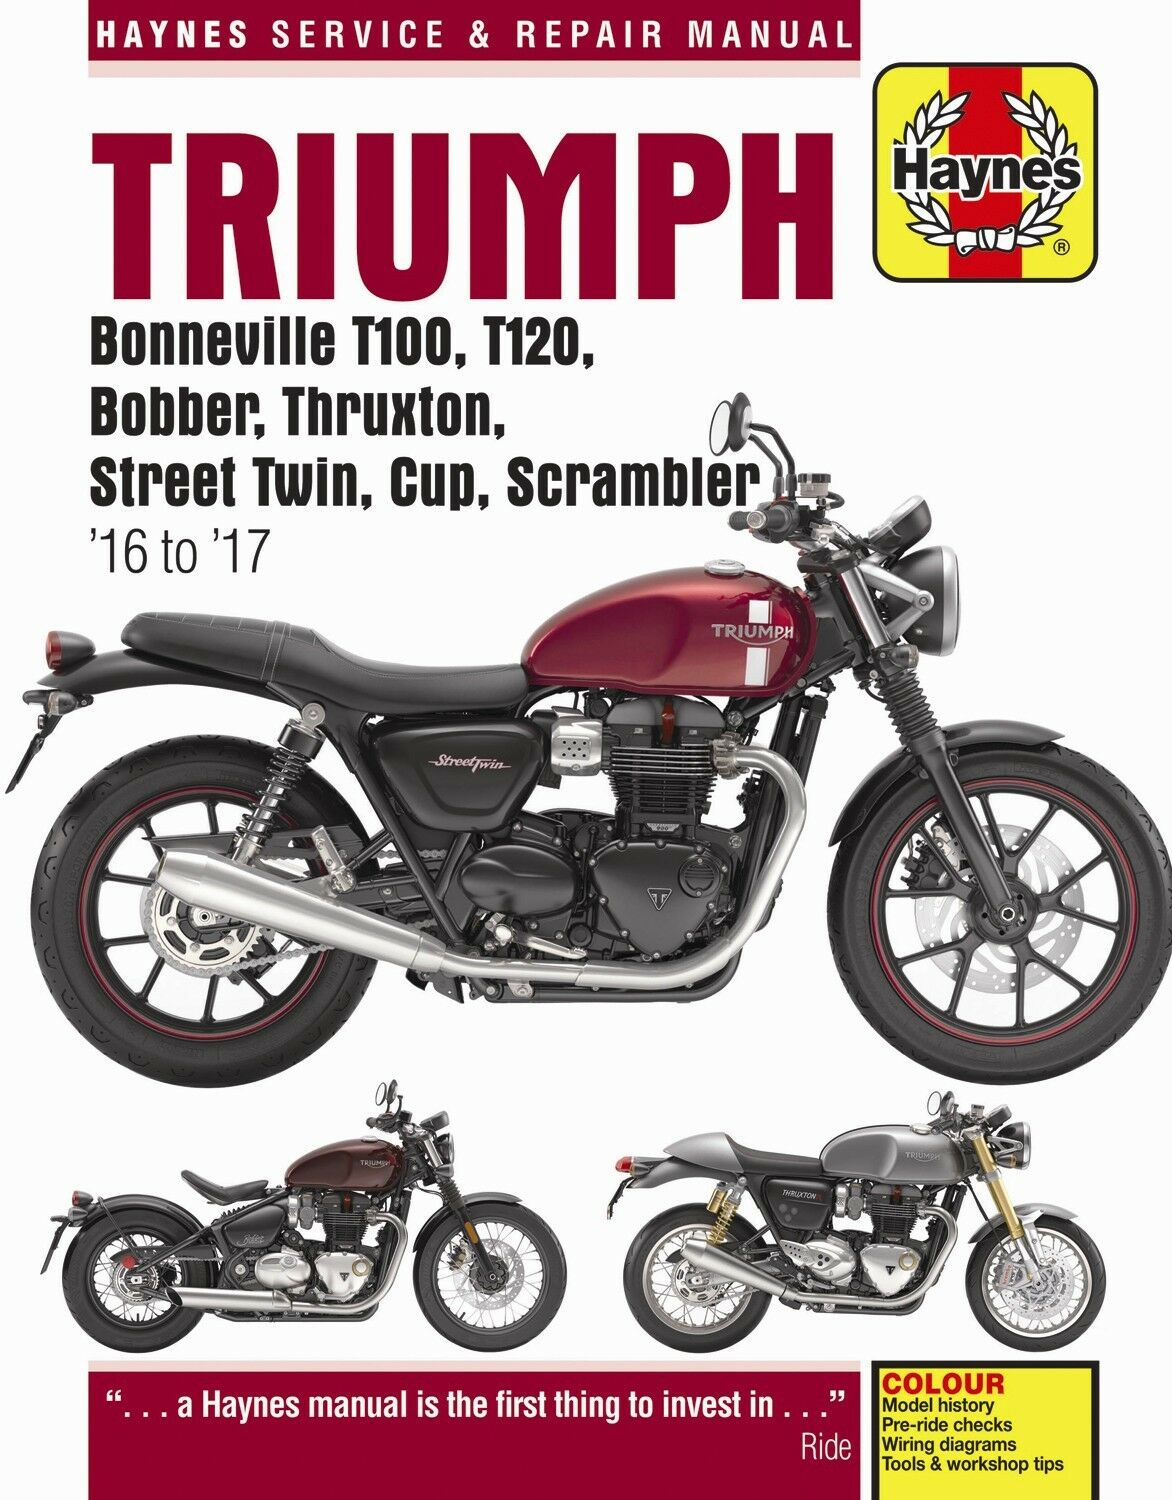 2016-2017 Triumph Bonneville T100 T120 Bobber Thruxton Street Twin REPAIR  MANUAL 1 of 3Only 5 available See More